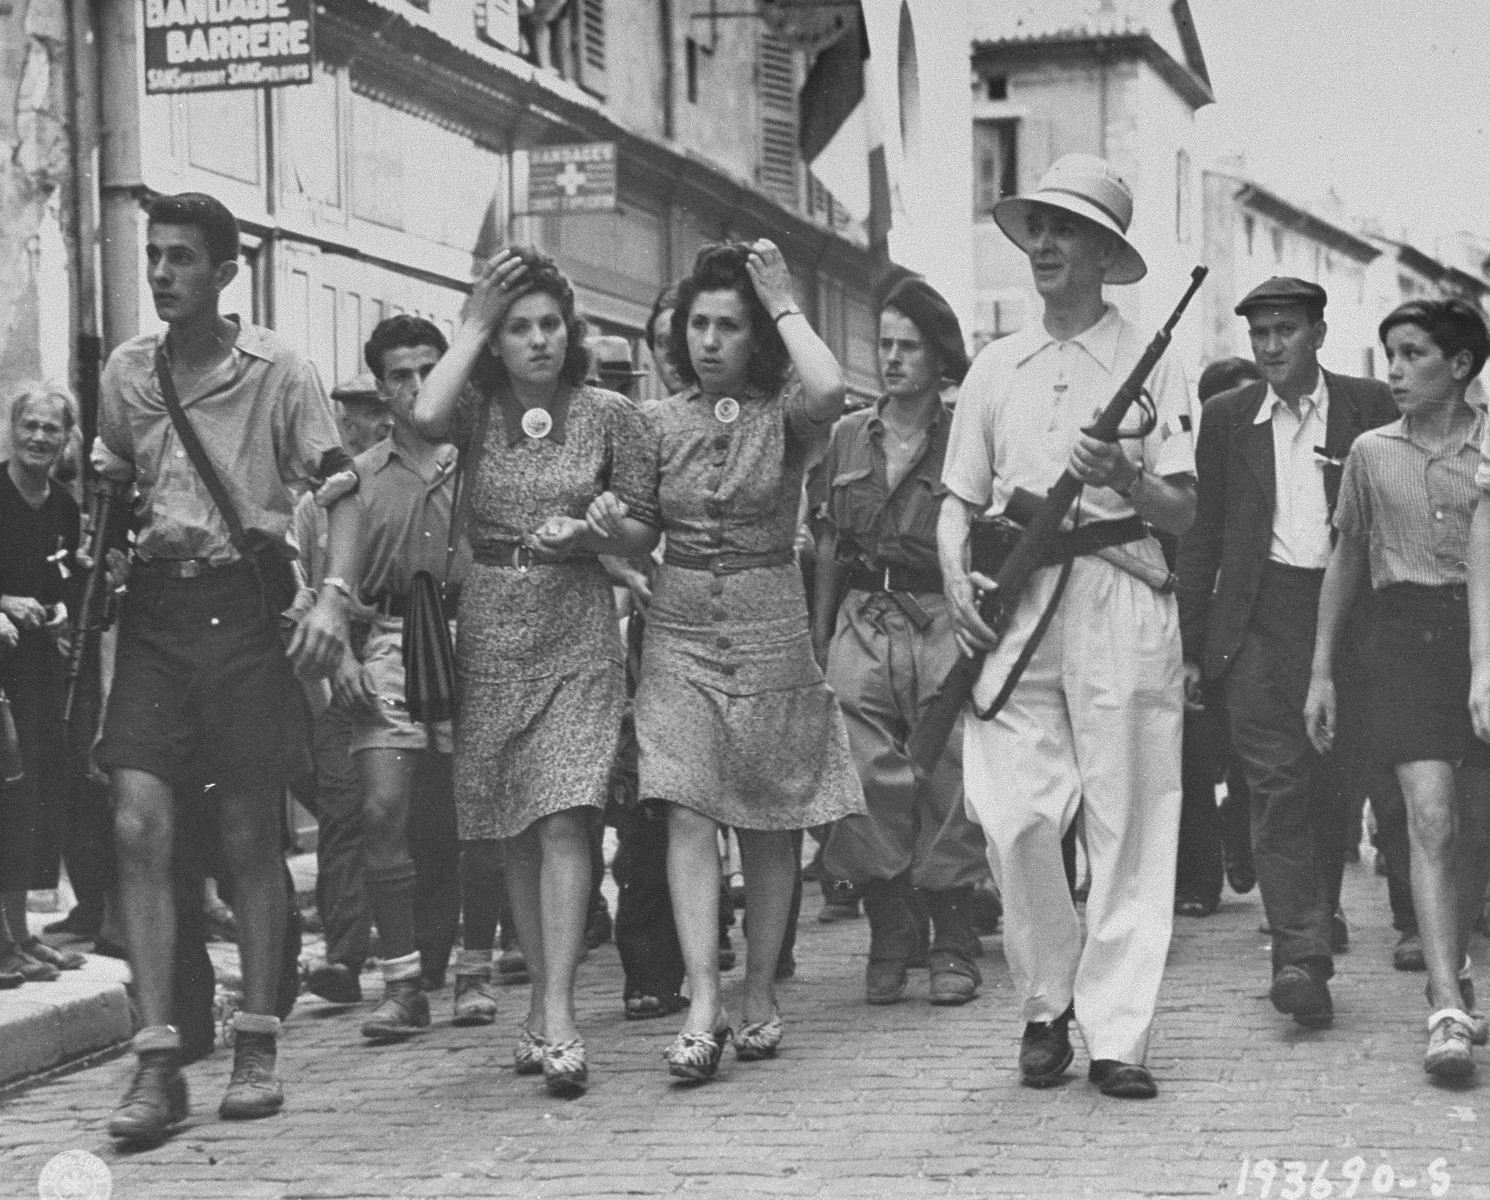 Members of the French resistance lead two women accused of being German sympathizers to the local prison, where their heads will be shaved as punishment for collaboration.